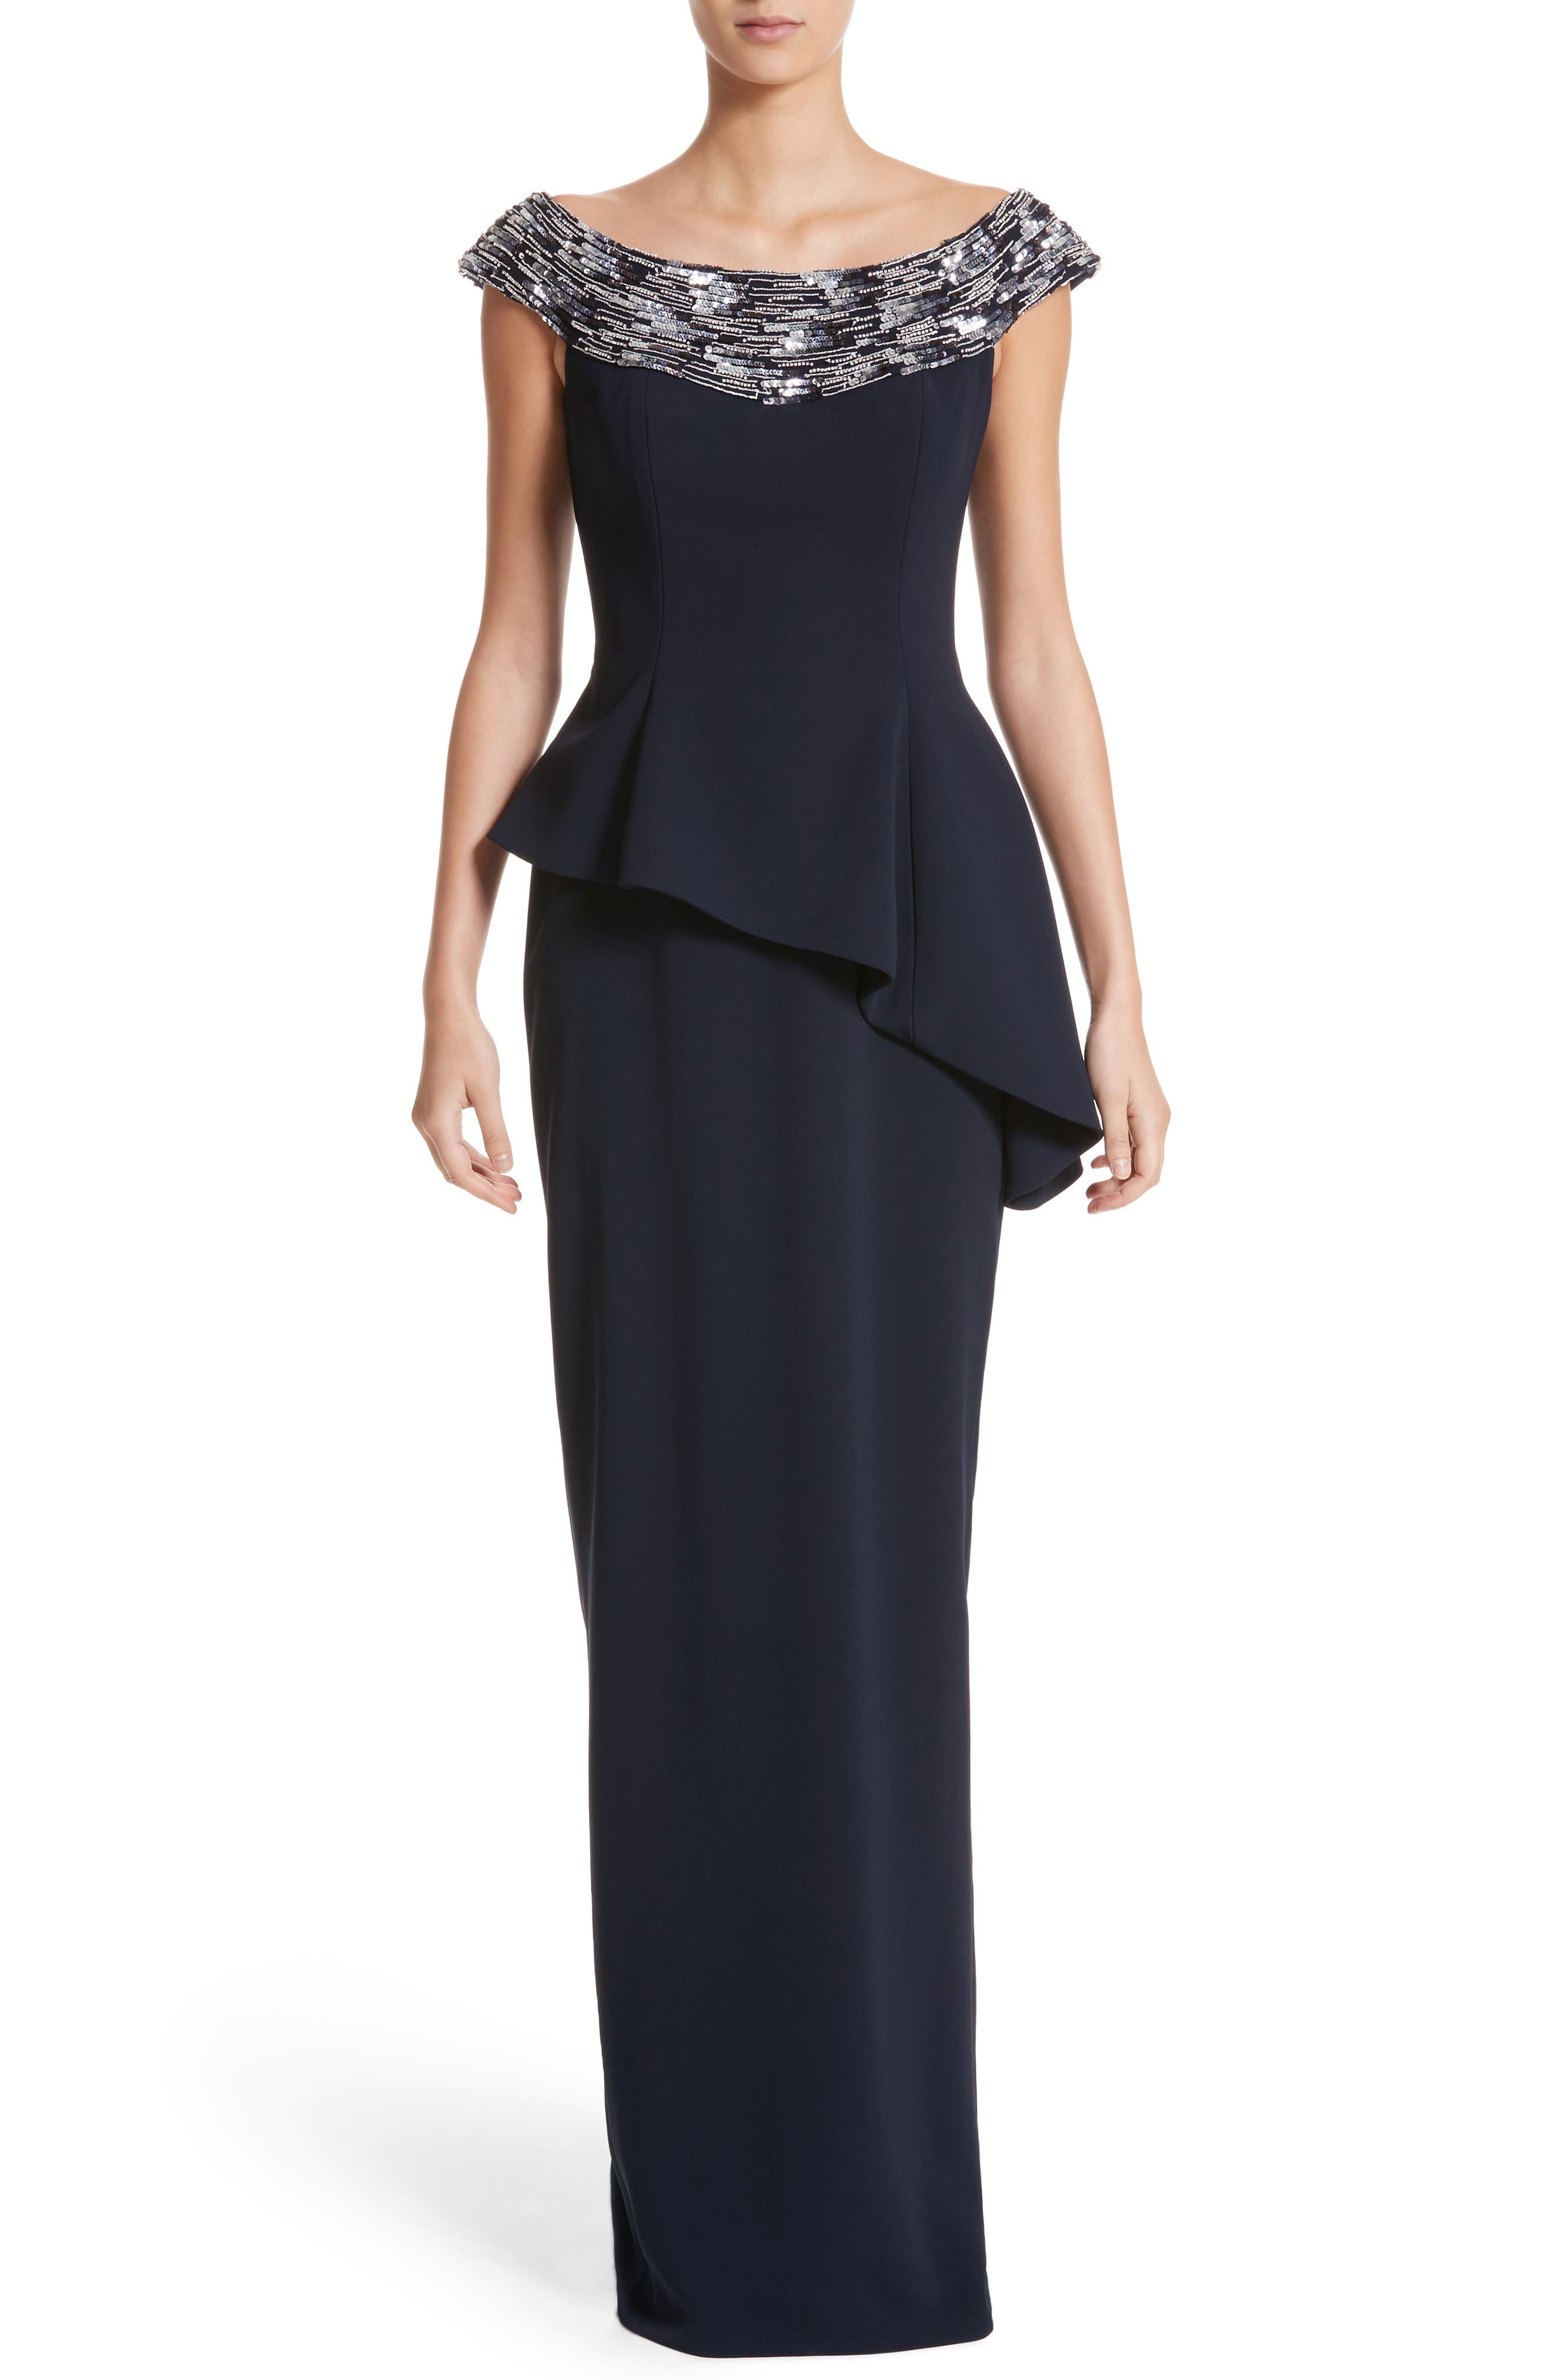 Alternate Image 1 Selected - Pamella Roland Embellished Off the Shoulder Peplum Gown